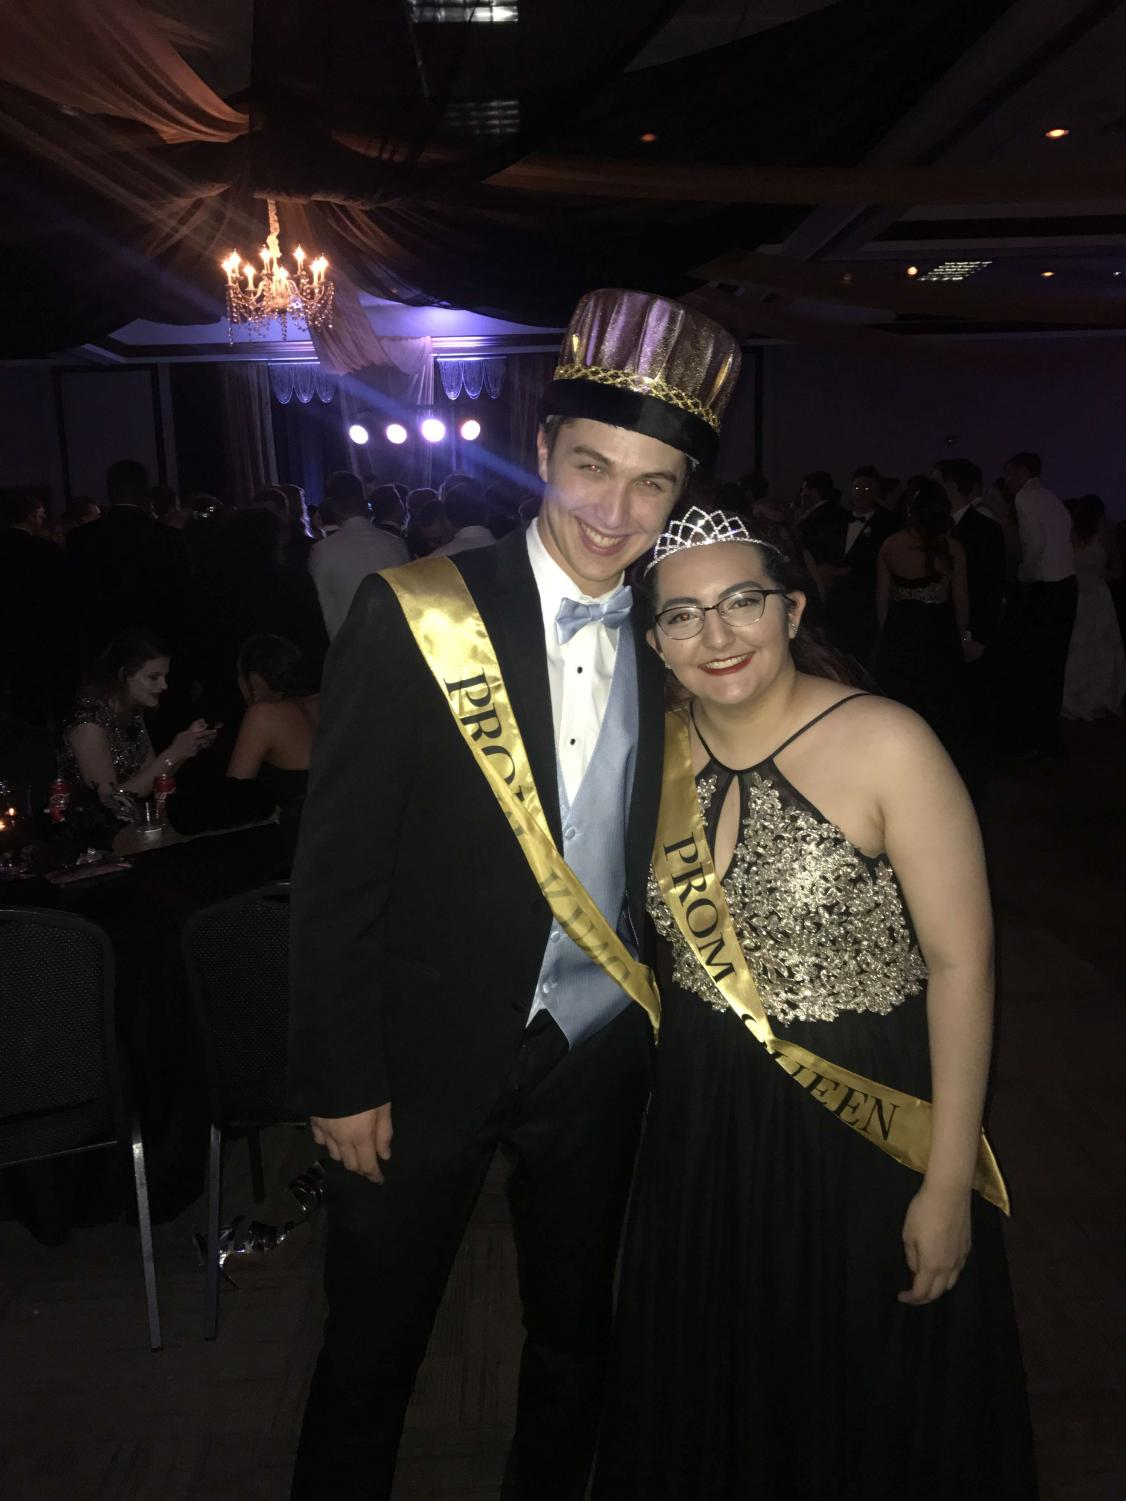 Prom King Joseph Melton and Prom Queen Katherine Rios